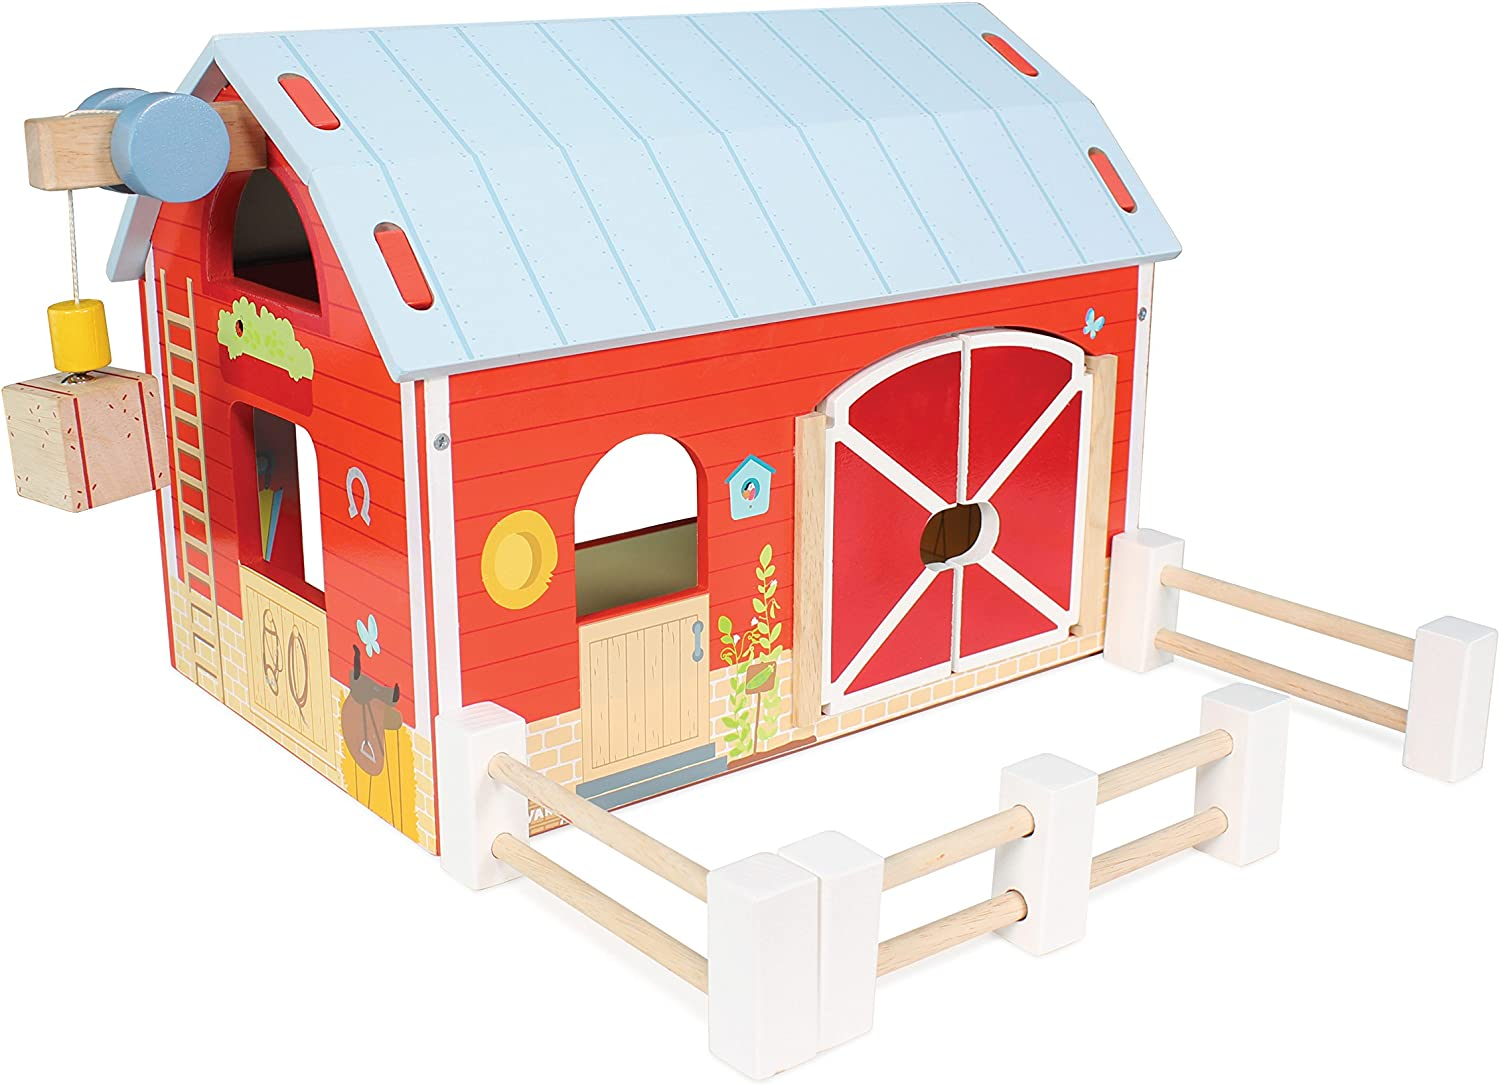 Le Toy Van - Educational Wooden Toy Colourful Wooden Red Barn   Great Interactive Role Play Gifts for A Boy Or Girl - 3+ Years